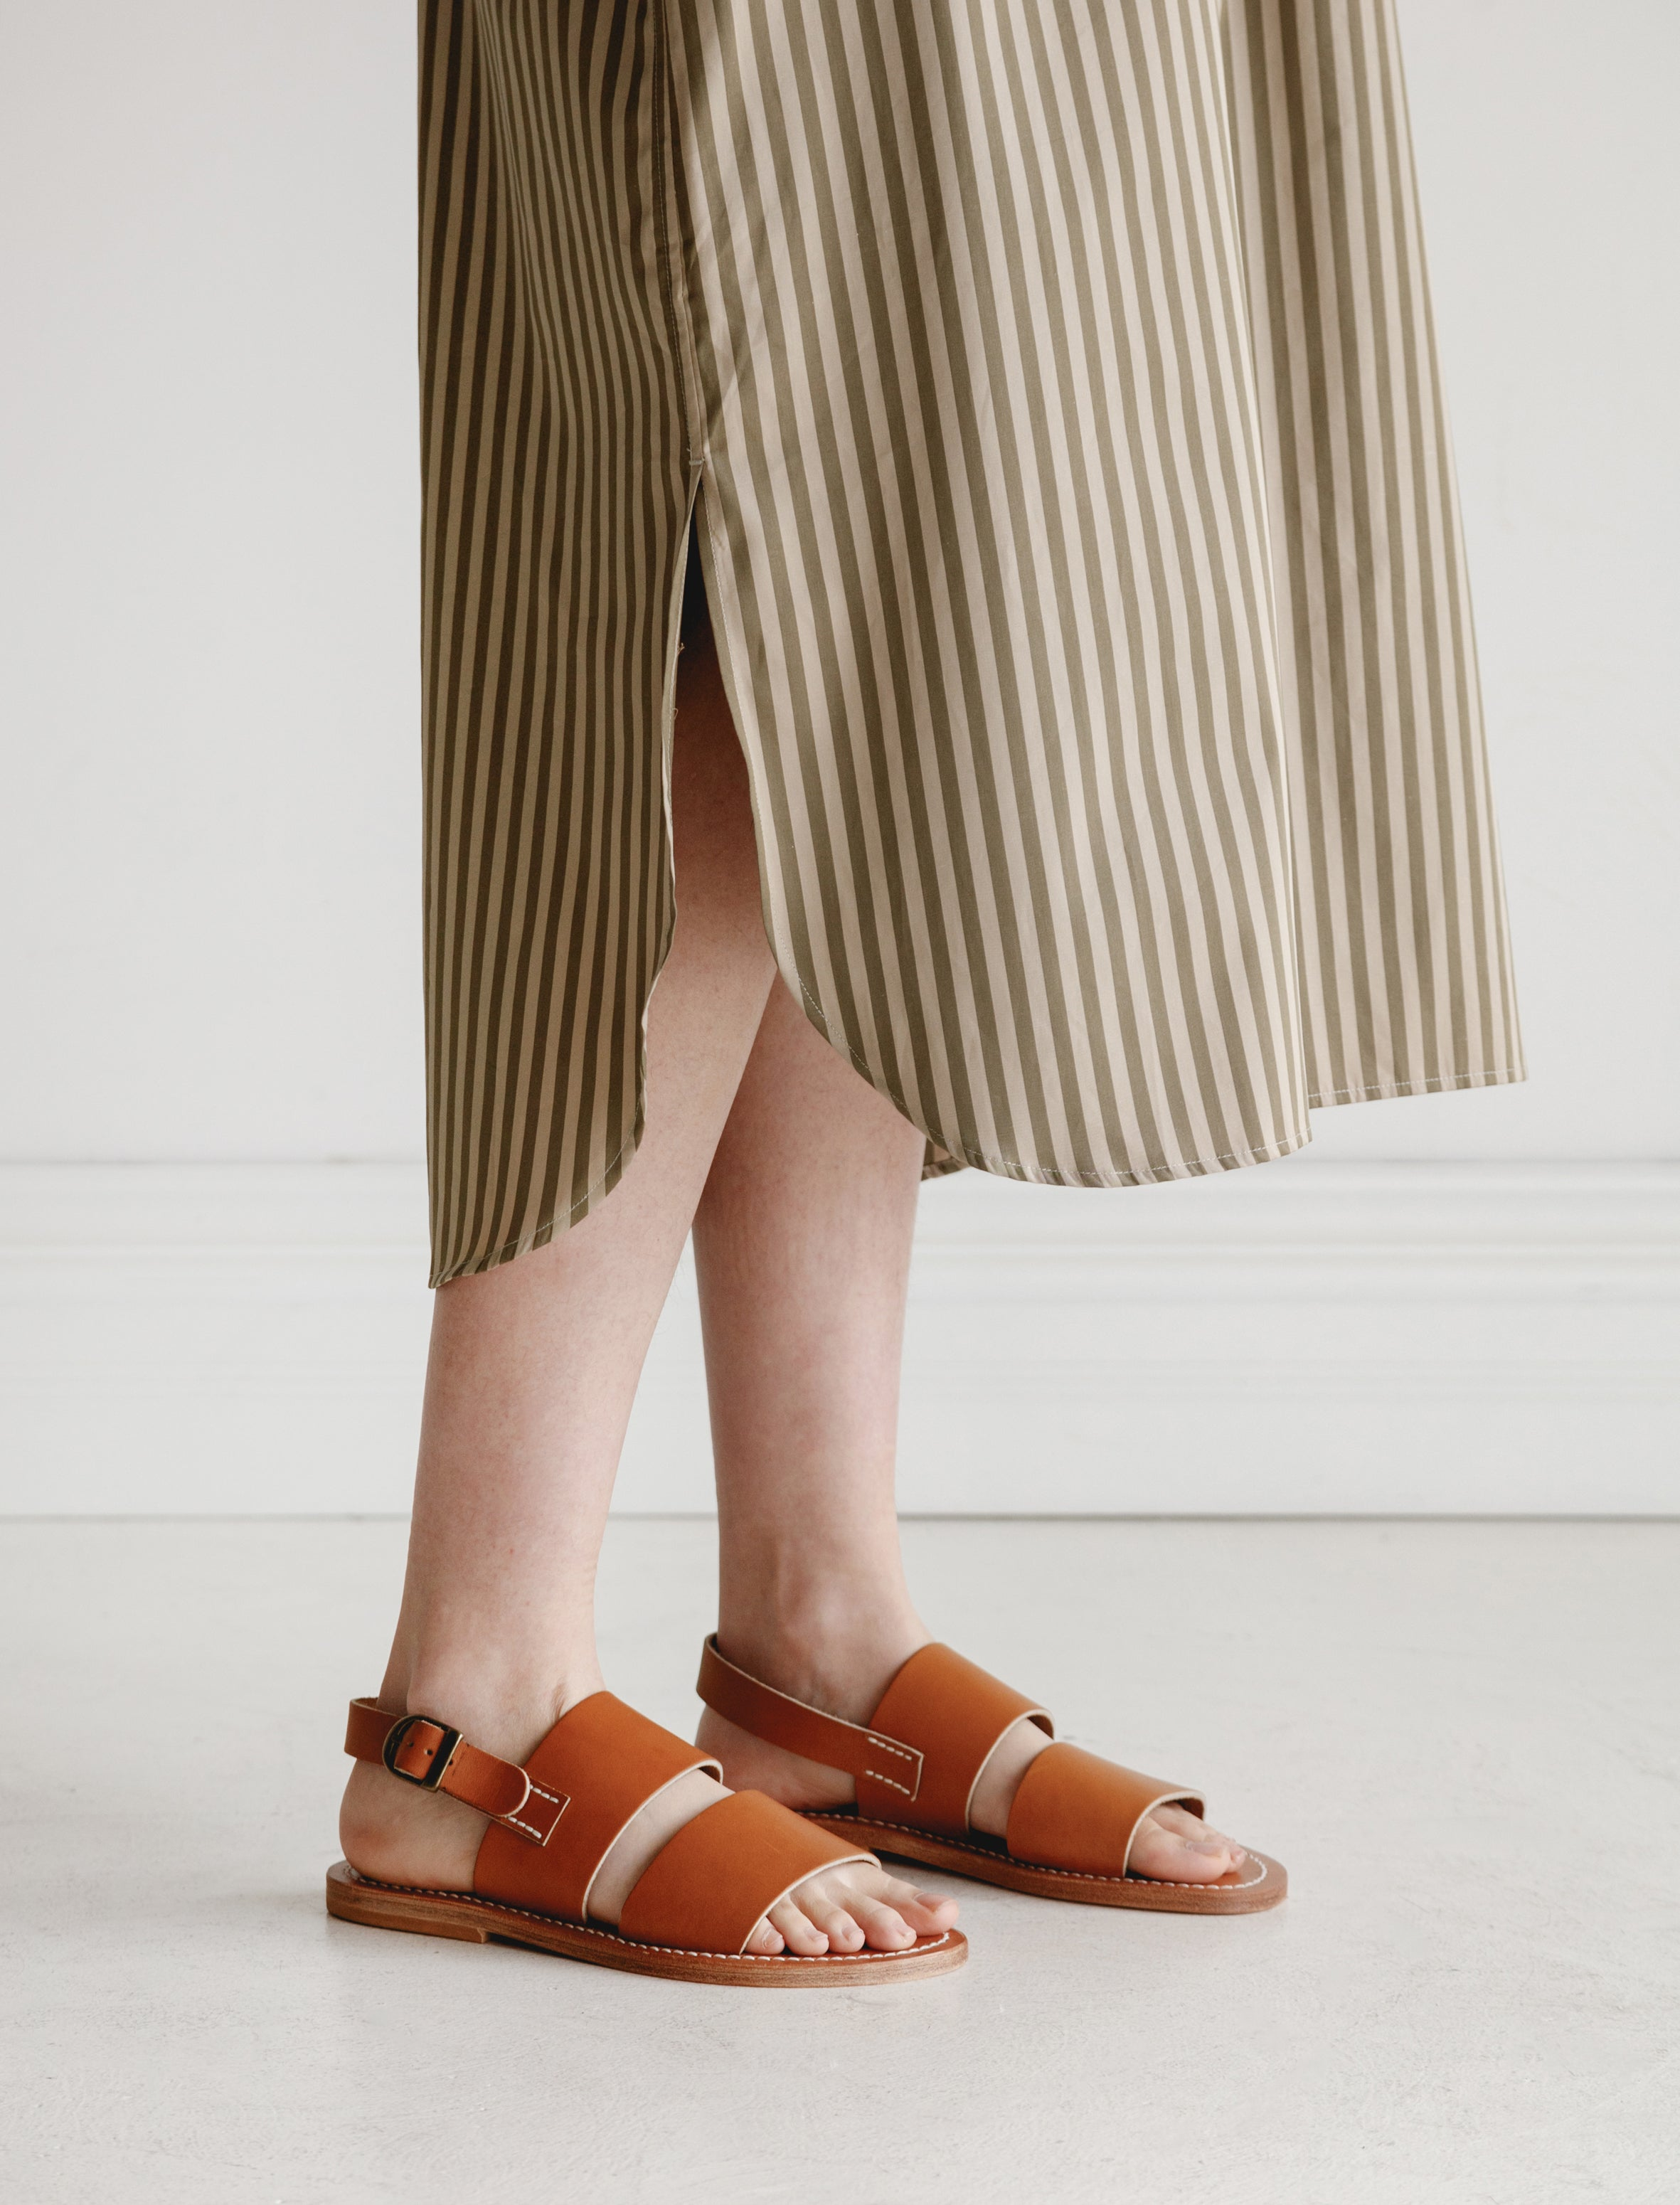 CristaSeya K. Jacques Natural Leather Sandals